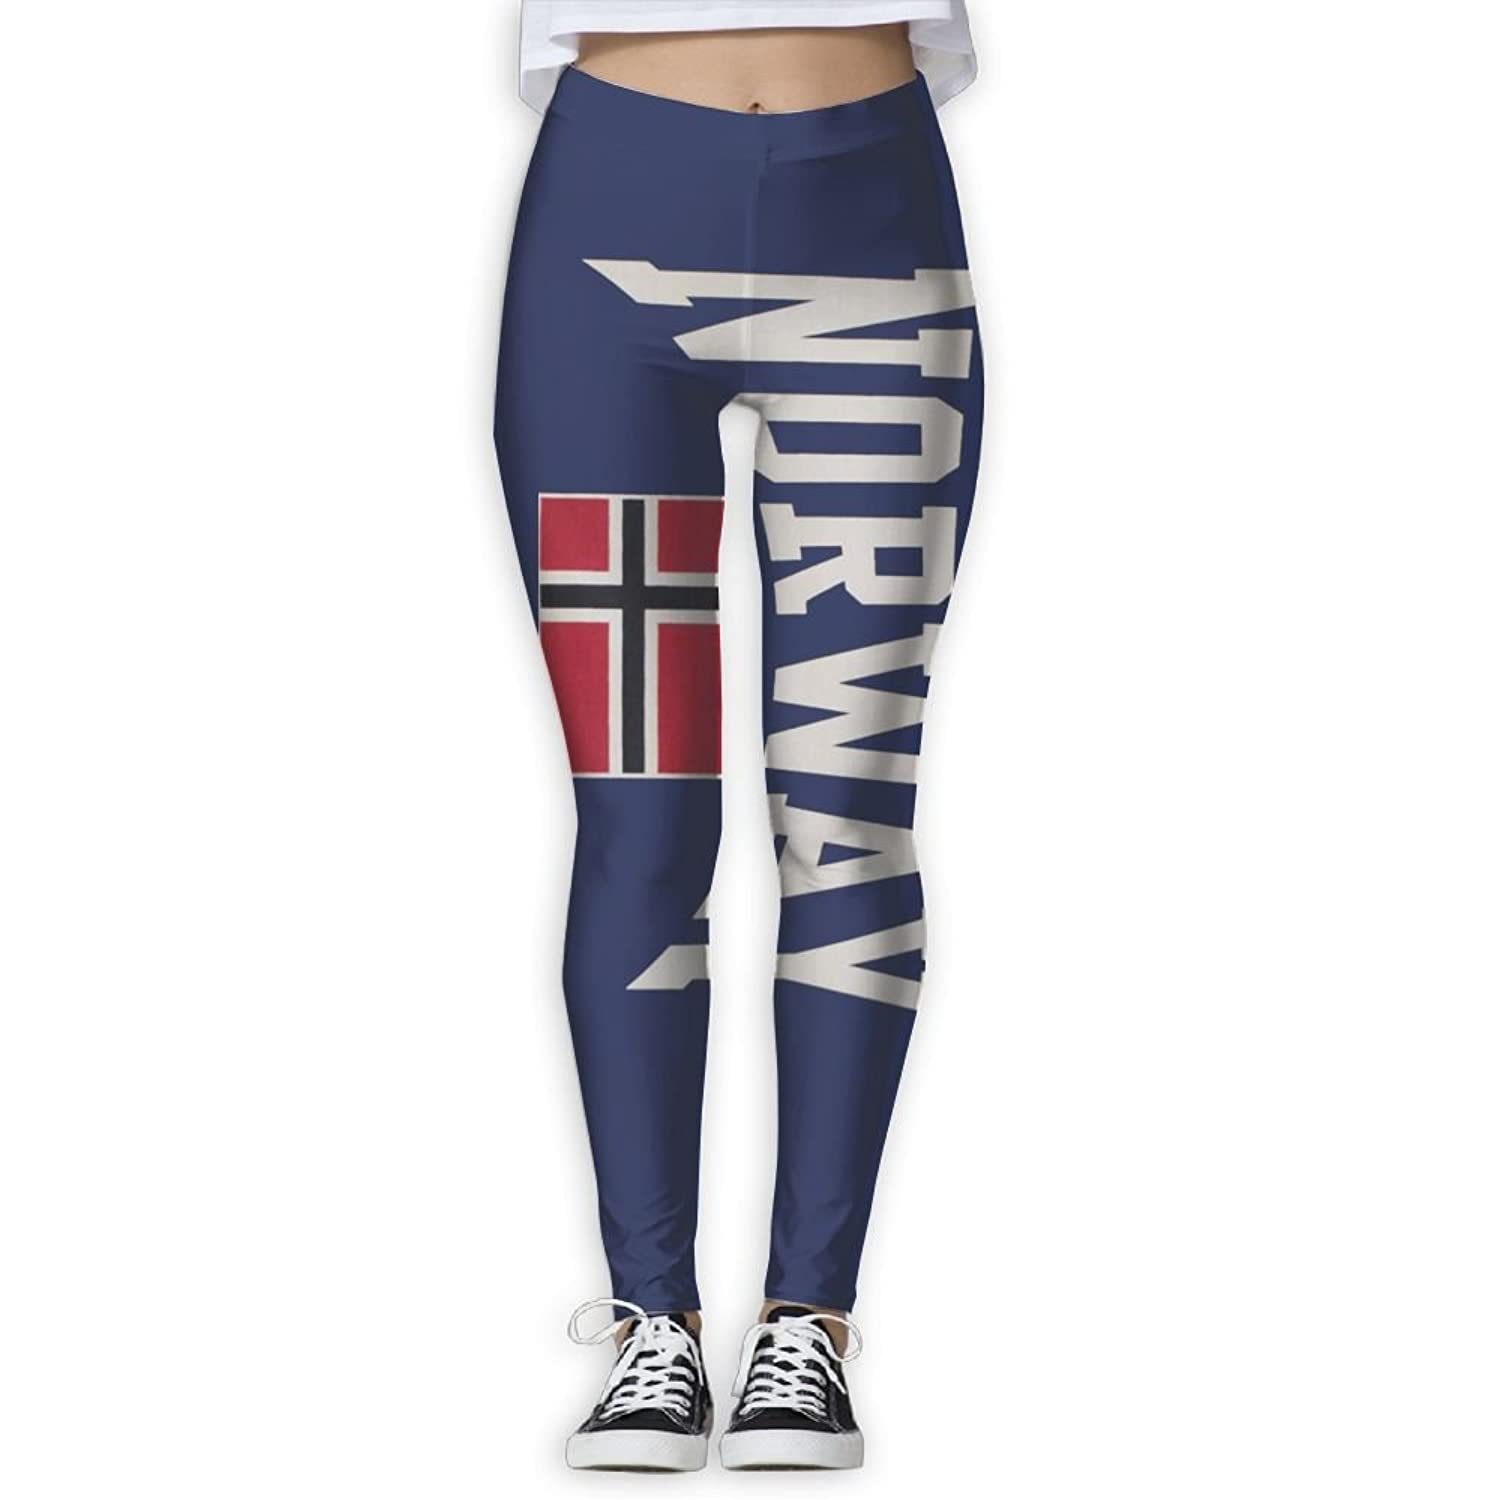 e807c912d4429 ZPENG Yoga Capris Norwegian Flag Fitness Women's Printed Sports Gym  Athletic Pants Leggings